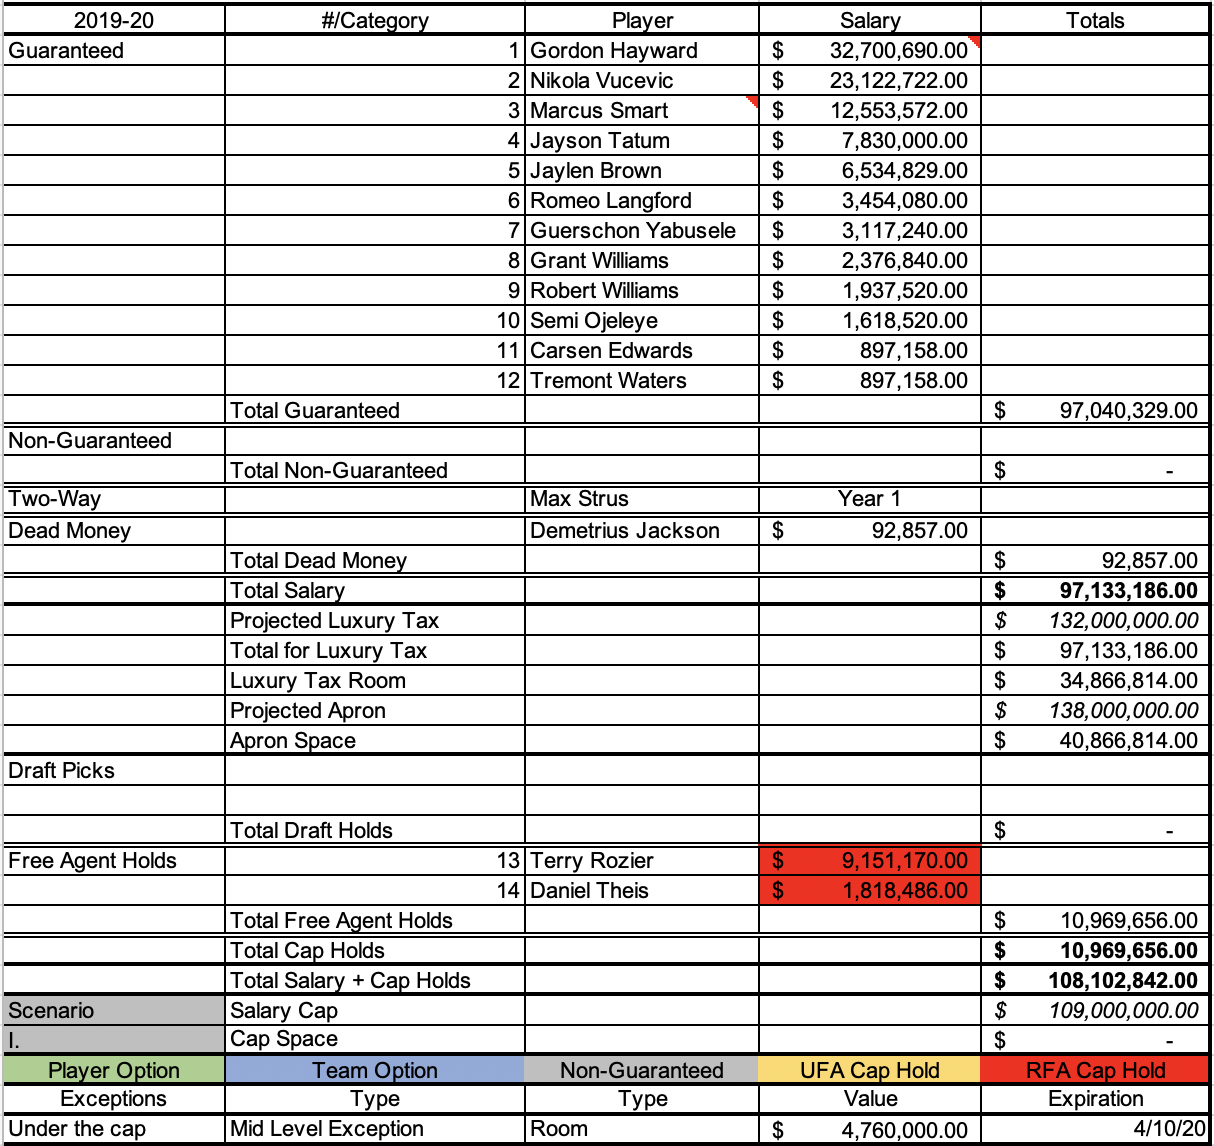 Celtics cap sheet if they use the majority of their cap space on Nikola Vucevic while using the remainder to sign Carsen Edwards and Tremont Waters to multi-year deals with minimum starting salaries.